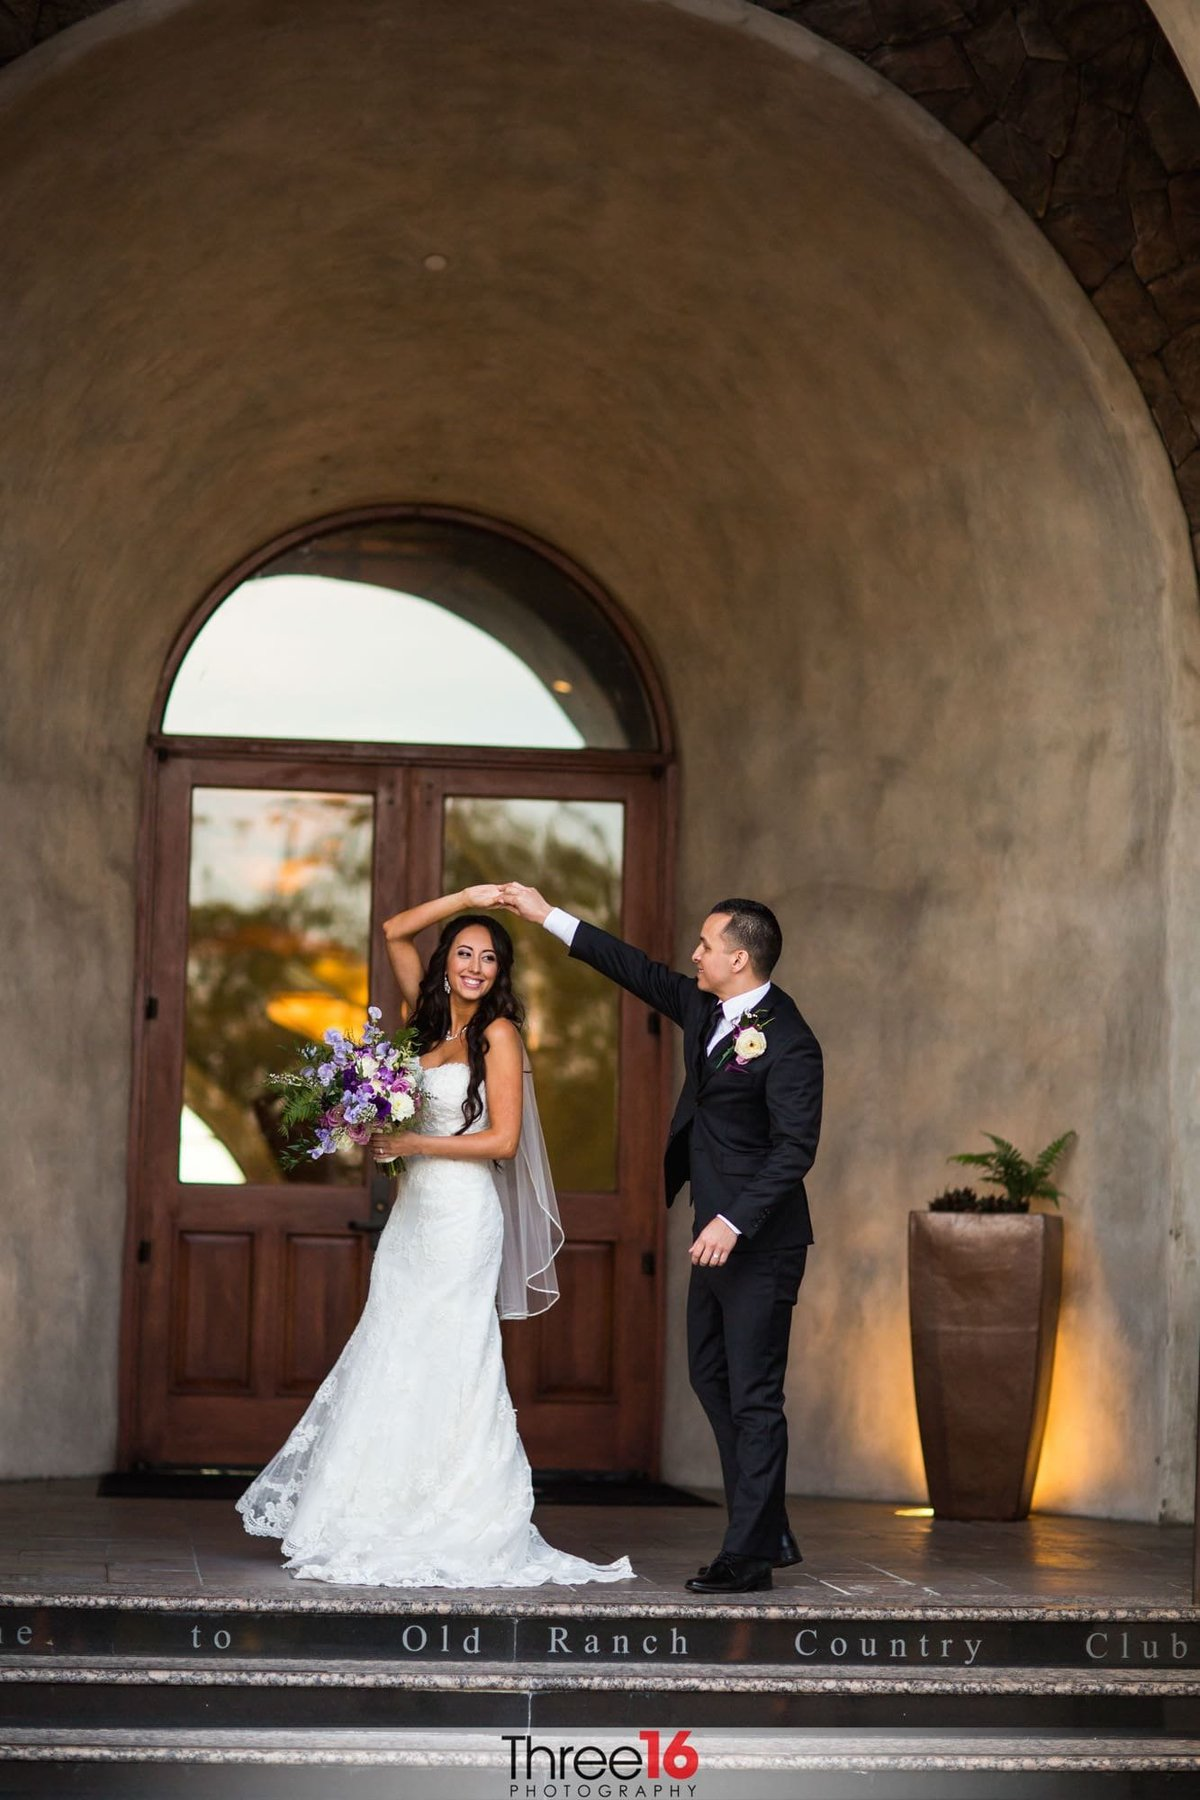 Old Ranch Country Club Wedding Orange County Wedding Photographer Los Angeles Photography Three16 Photography 07